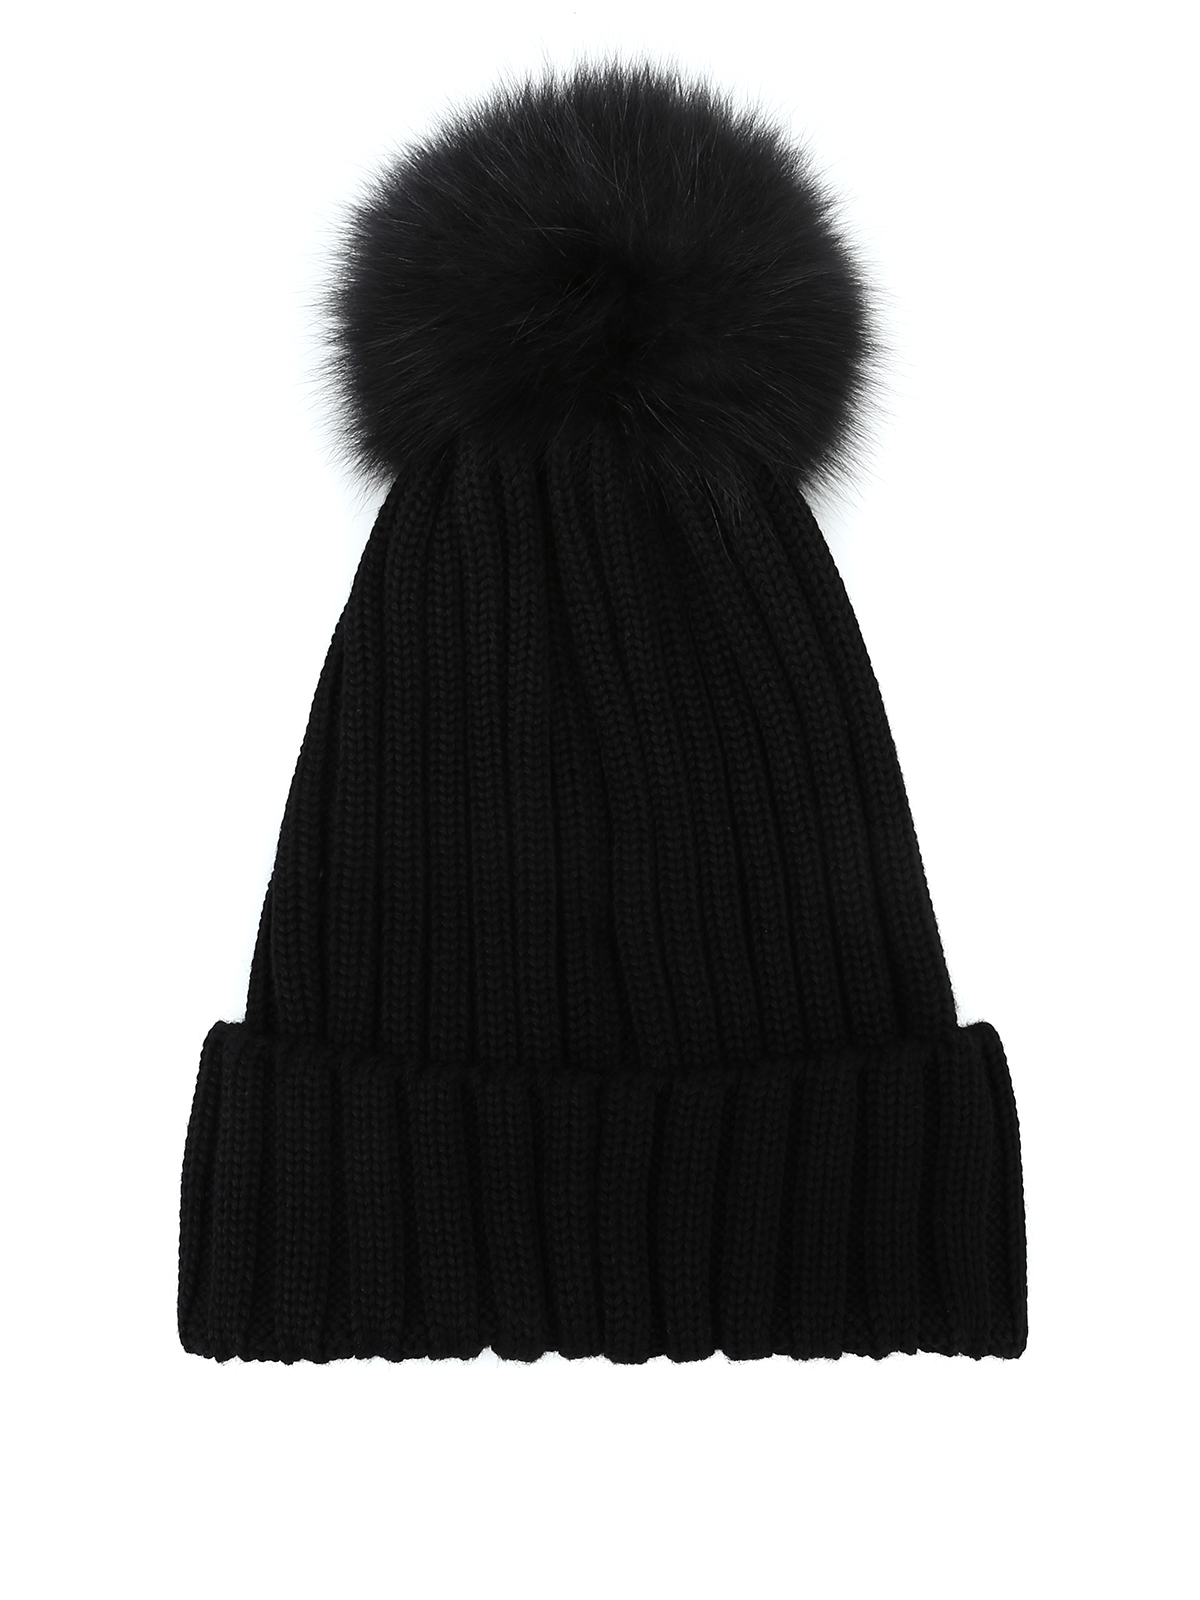 49ccea5ce16 Moncler - Fur pompom black ribbed wool beanie - beanies - D2 093 ...